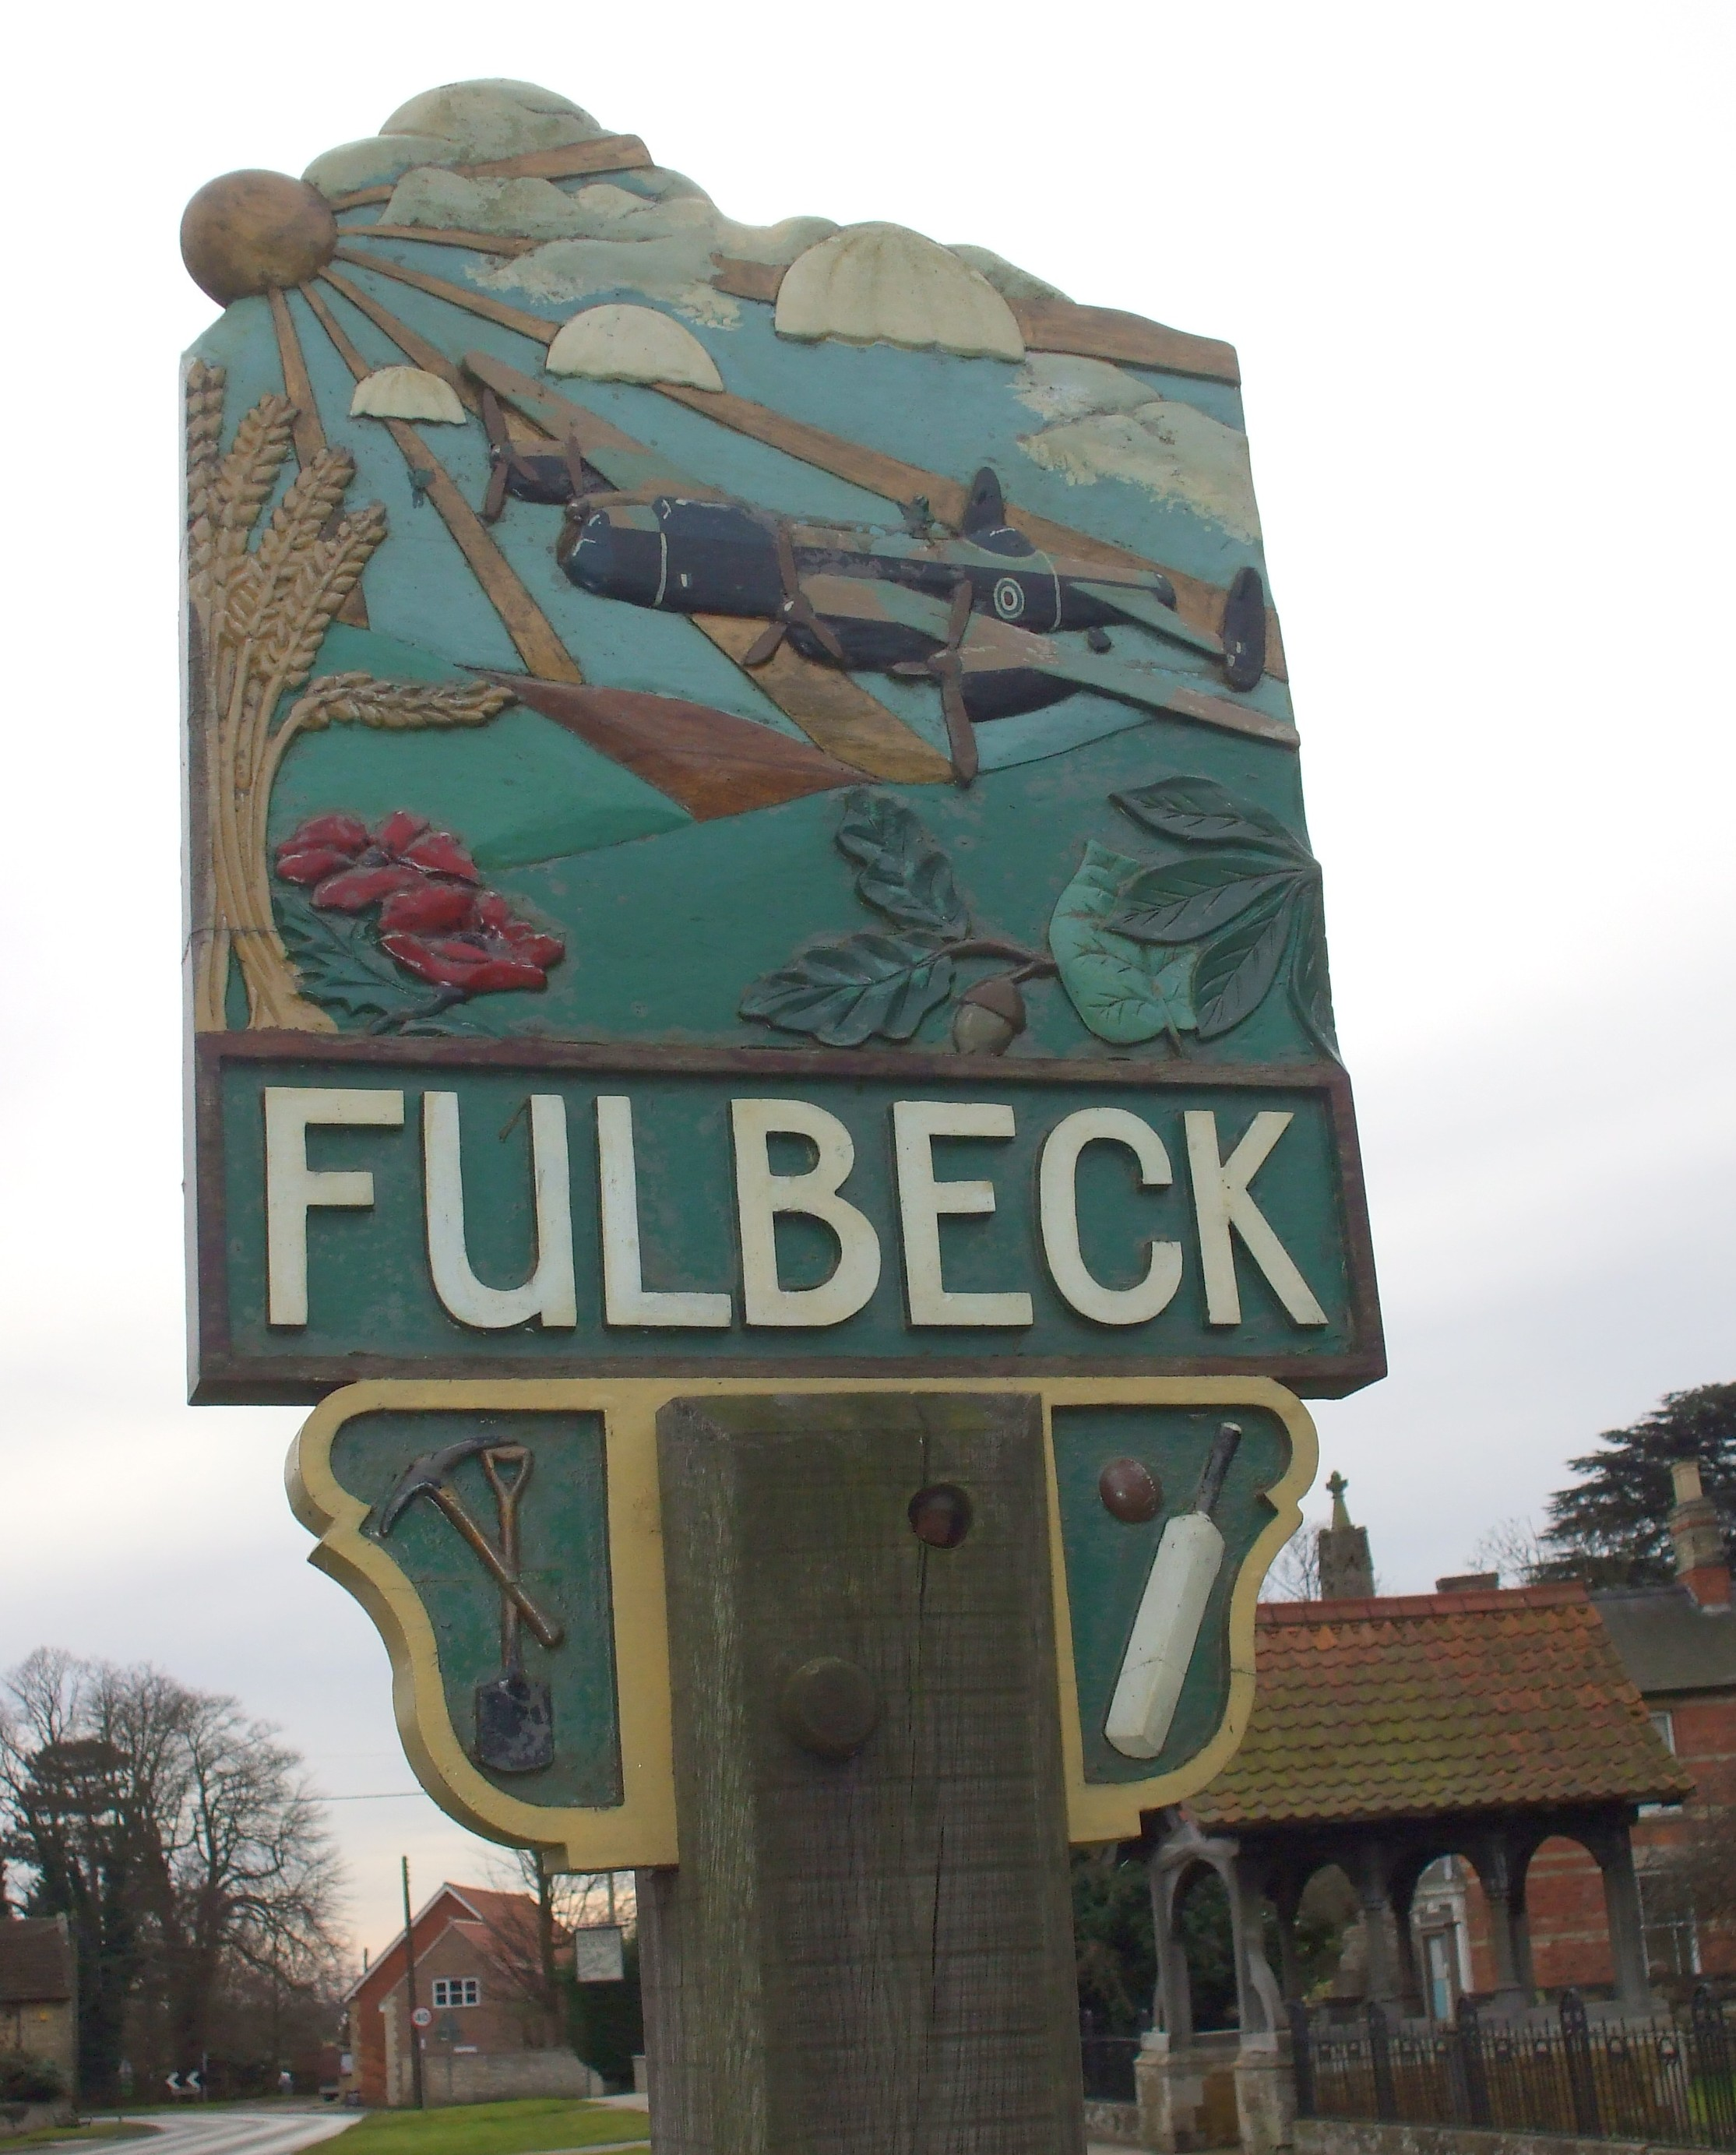 Fullbeck village sign obv